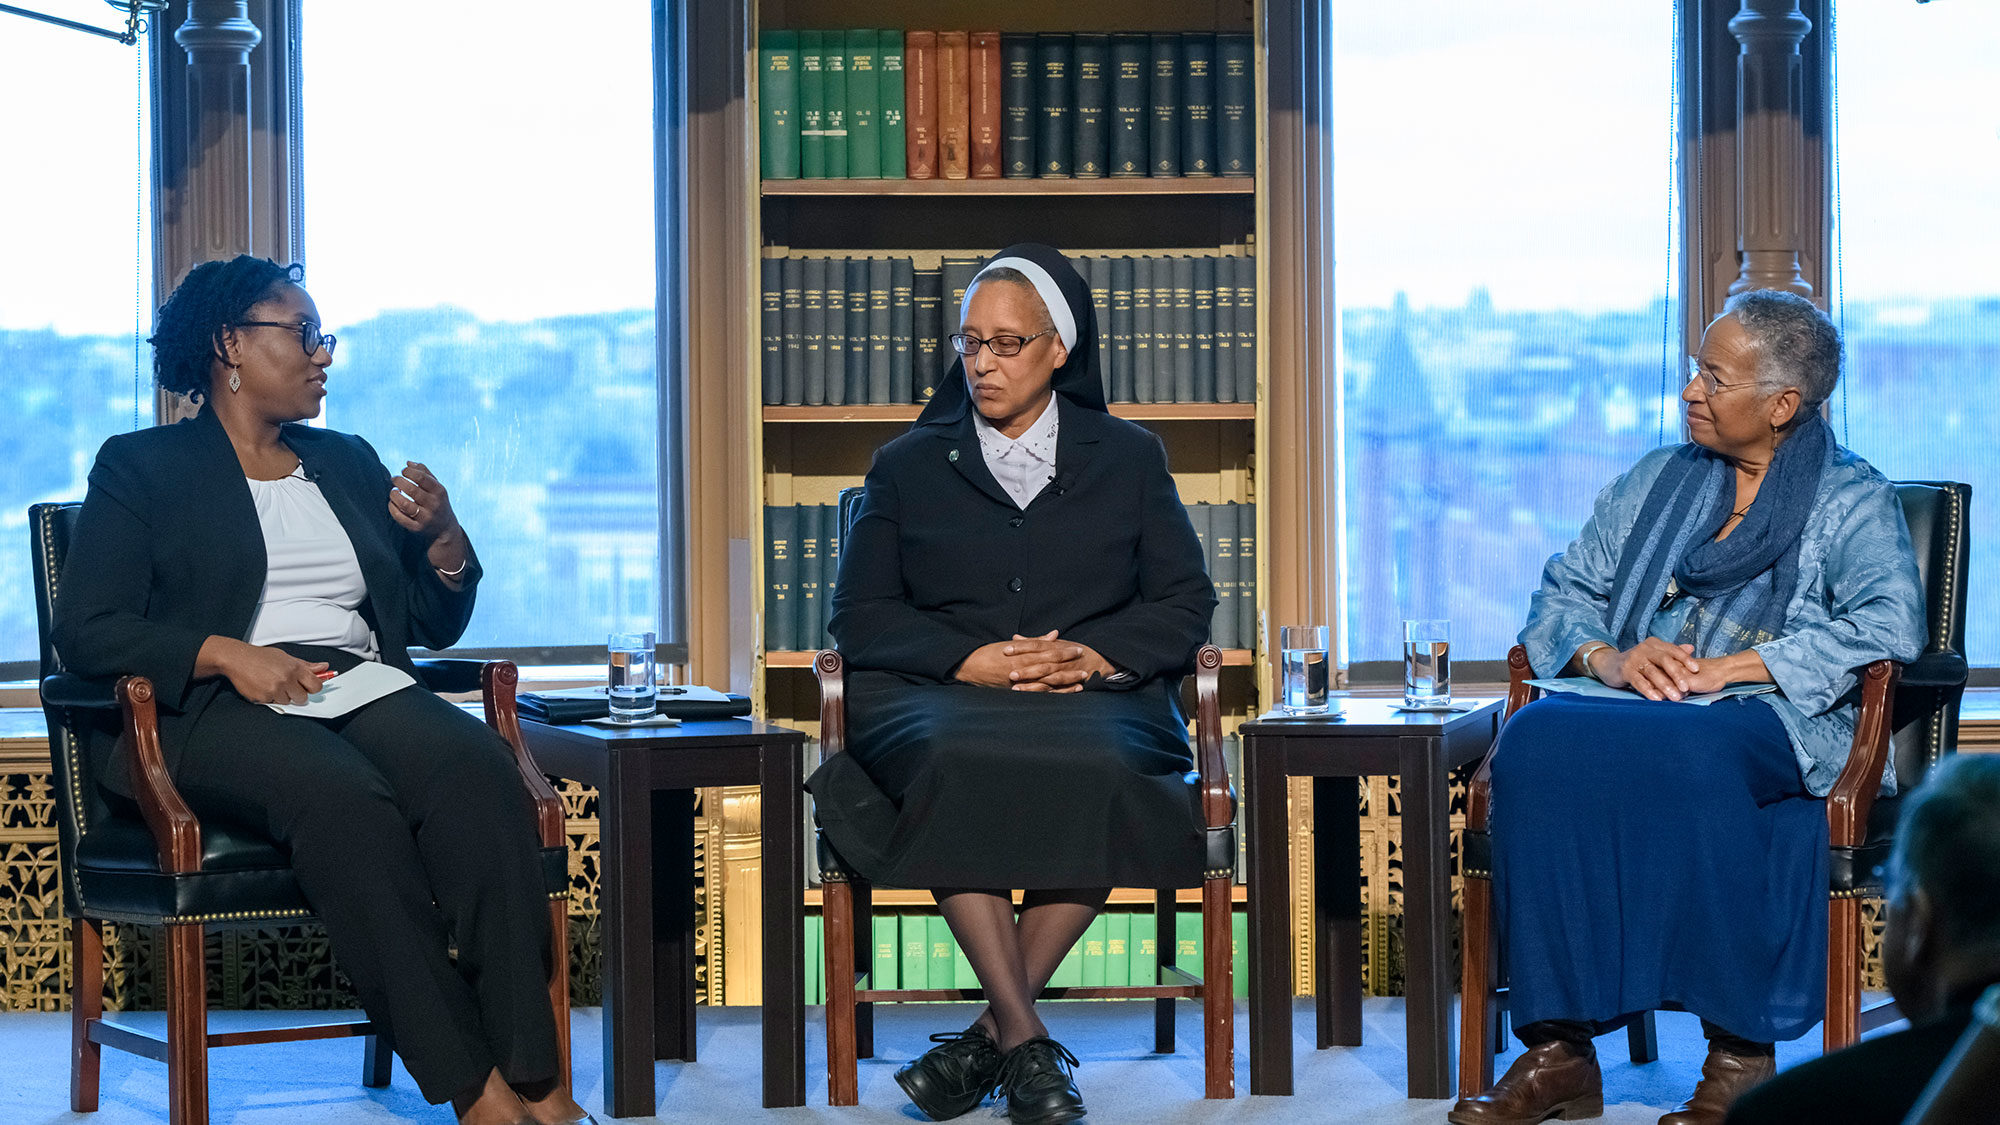 Marcia Chatelain, Marcia Hall and Diane Batts Morrow sit on stage and talk during a panel discussion.